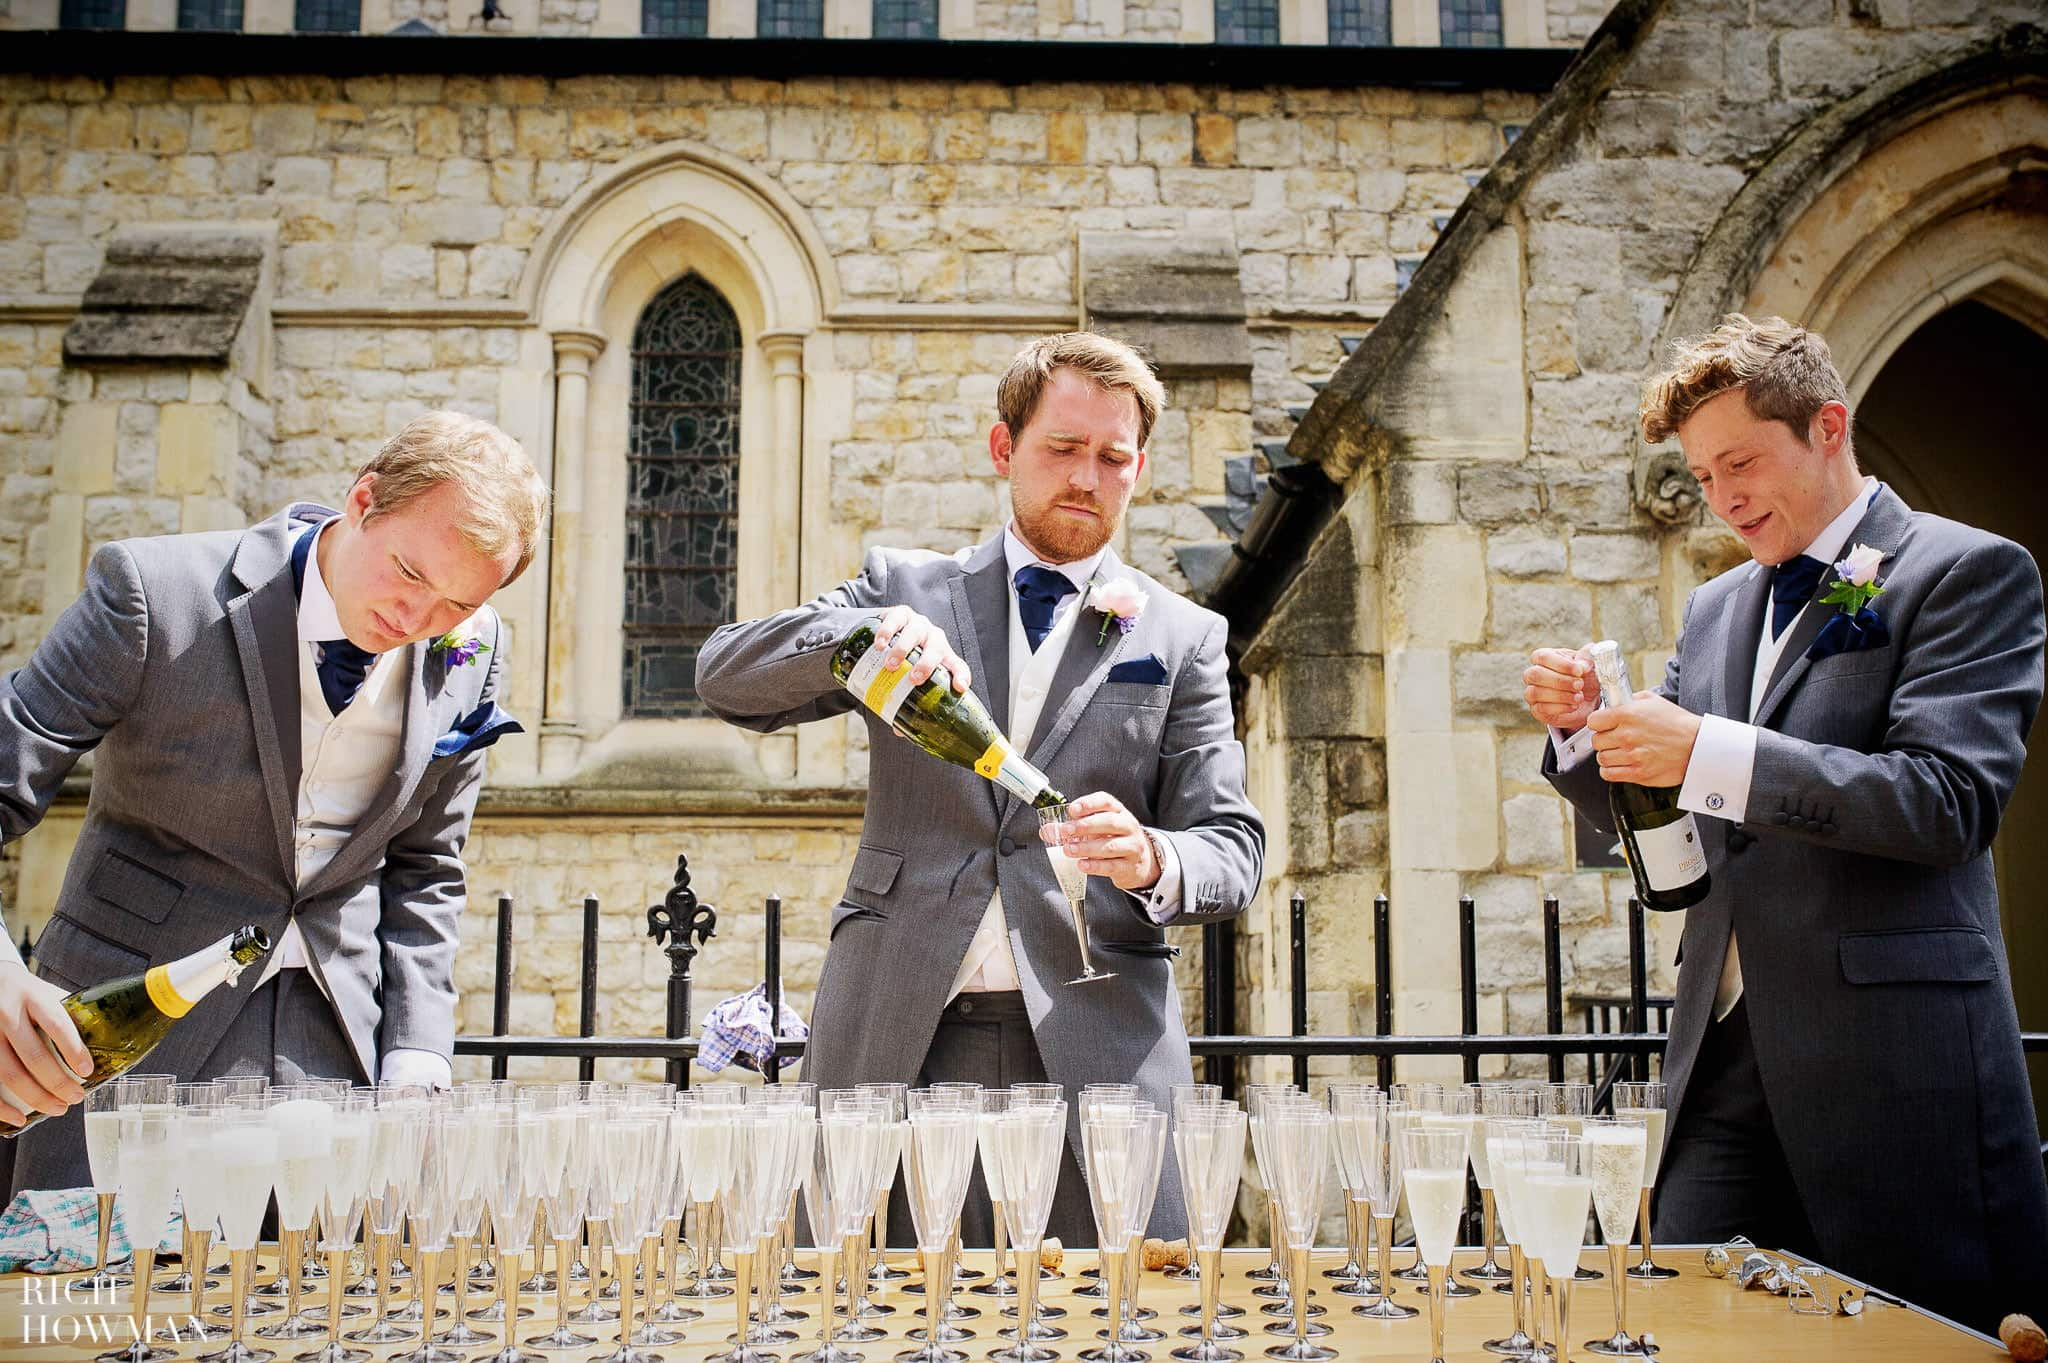 Notting Hill Wedding | Wedding Photographer London - Rich Howman 20